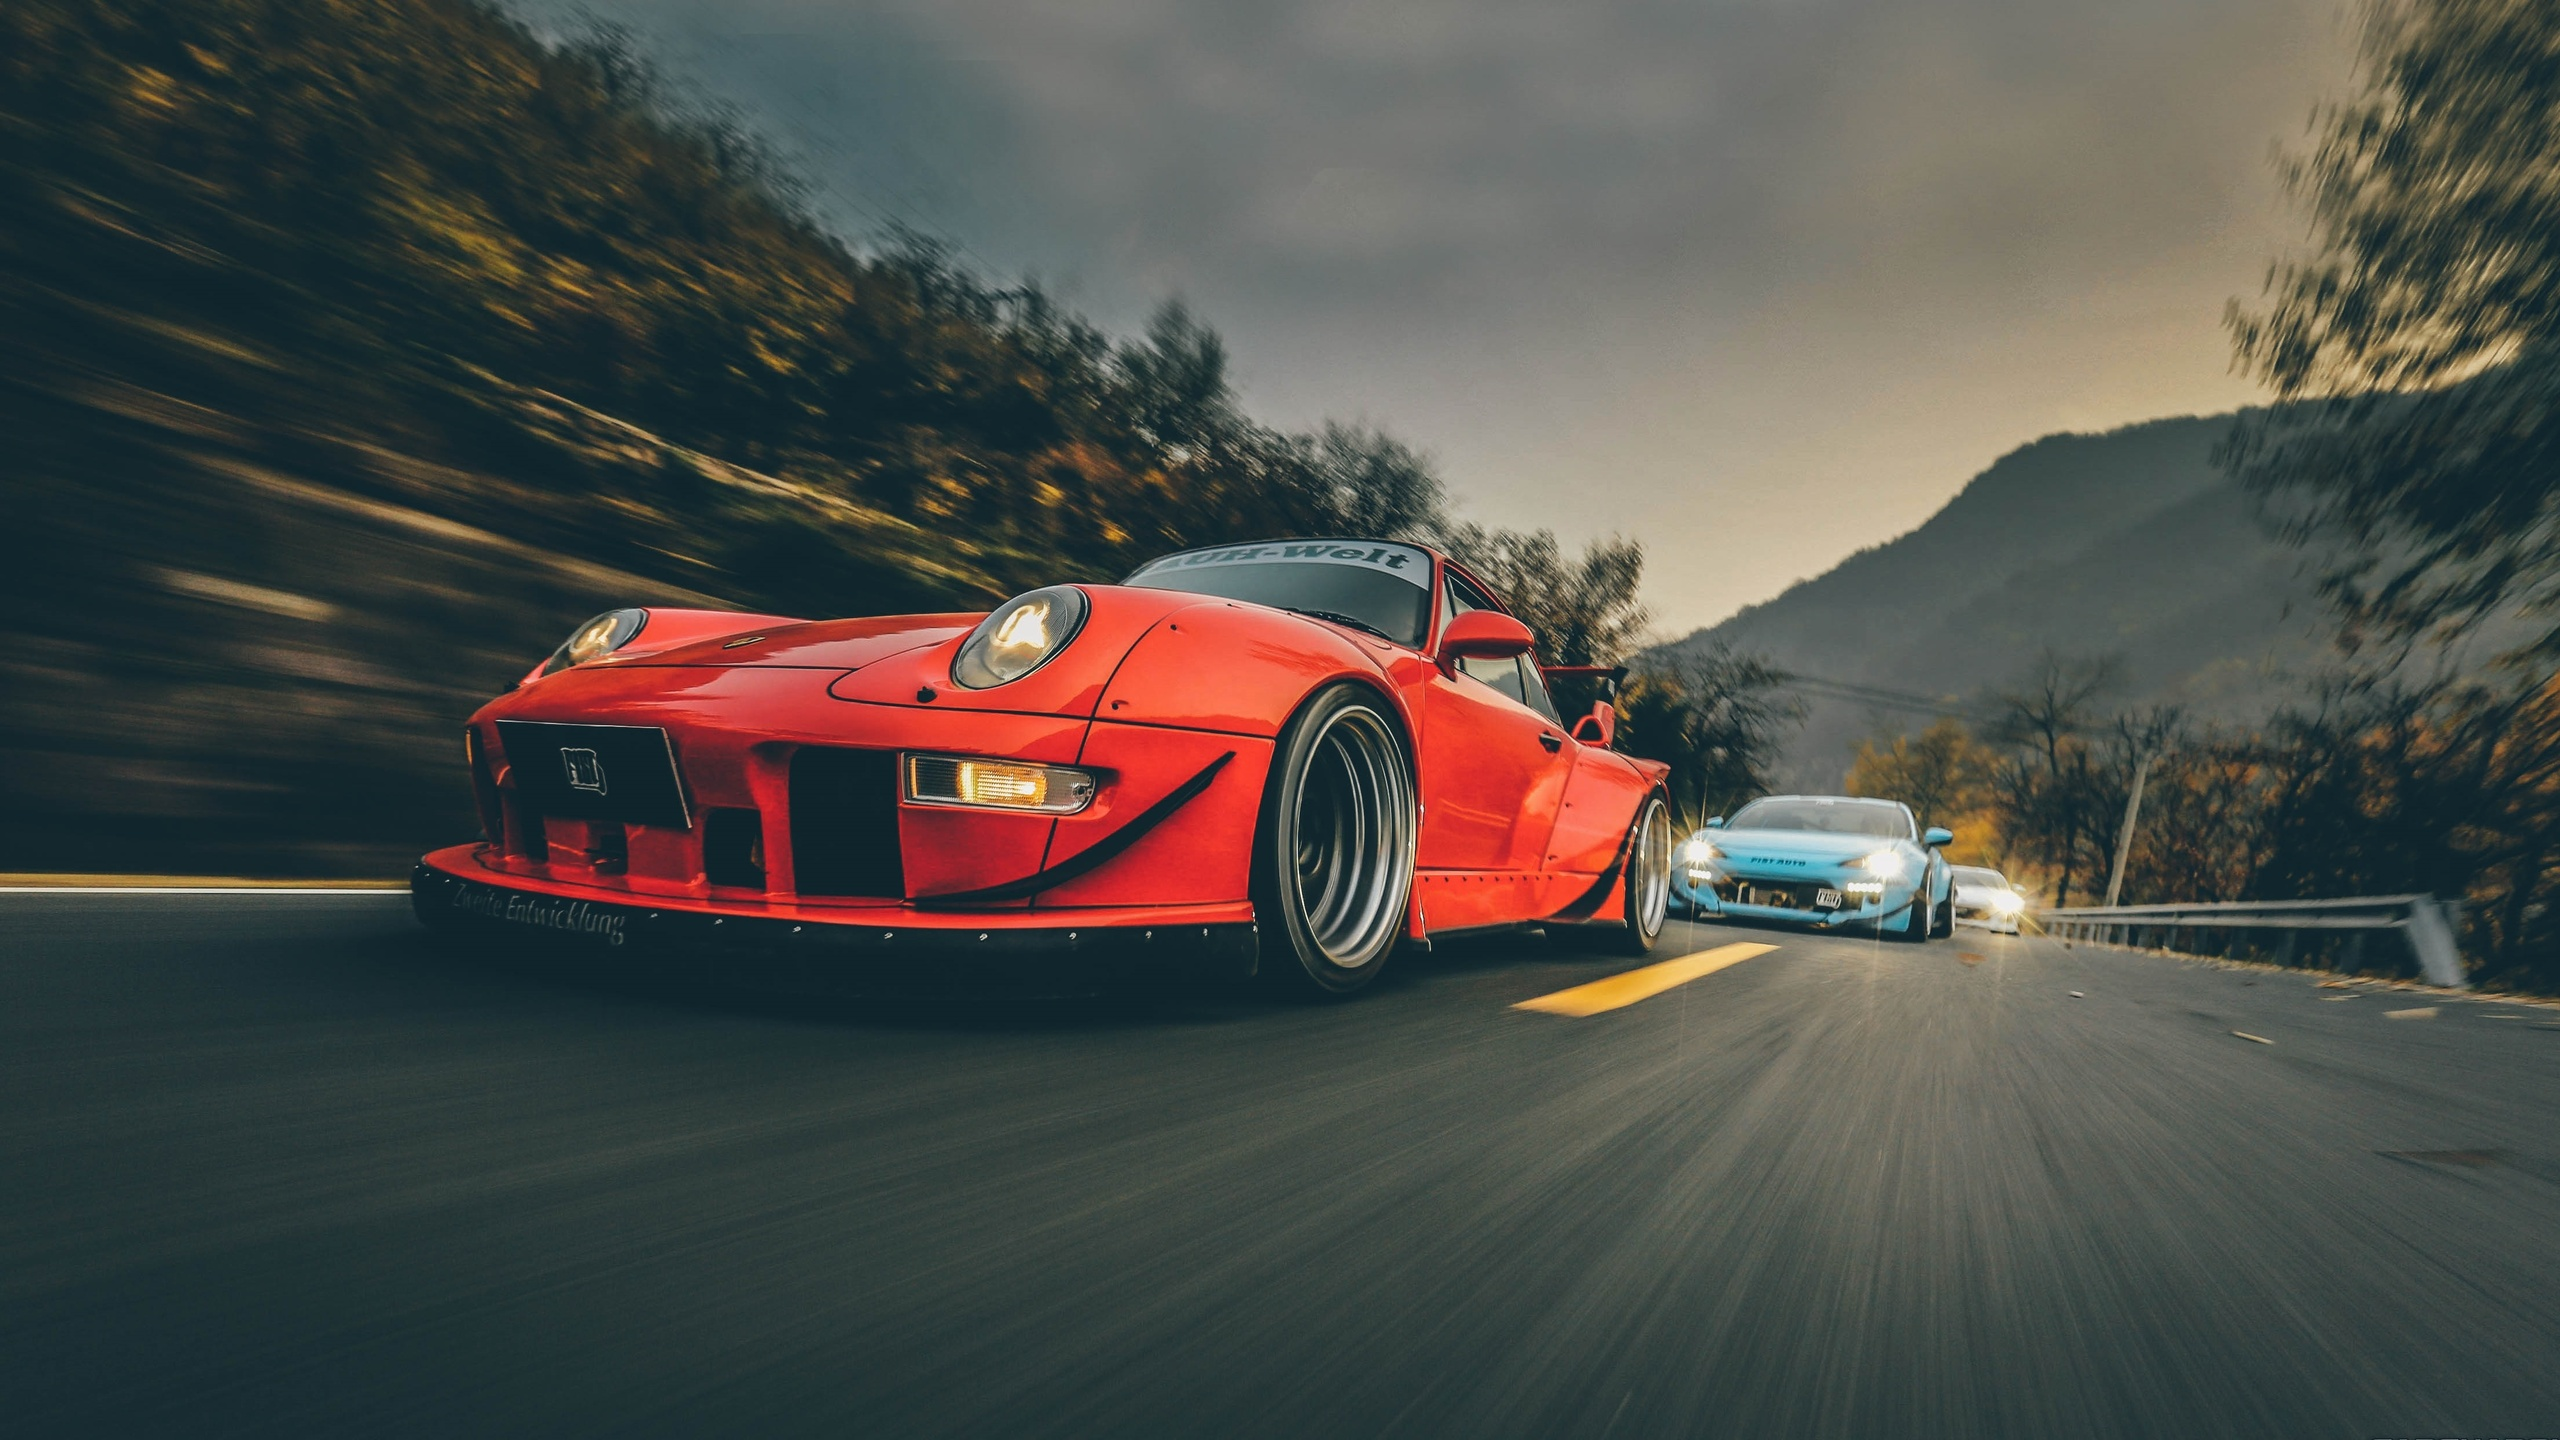 Rwb Porsche 911 Turbo Hd Cars 4k Wallpapers Images Backgrounds Photos And Pictures